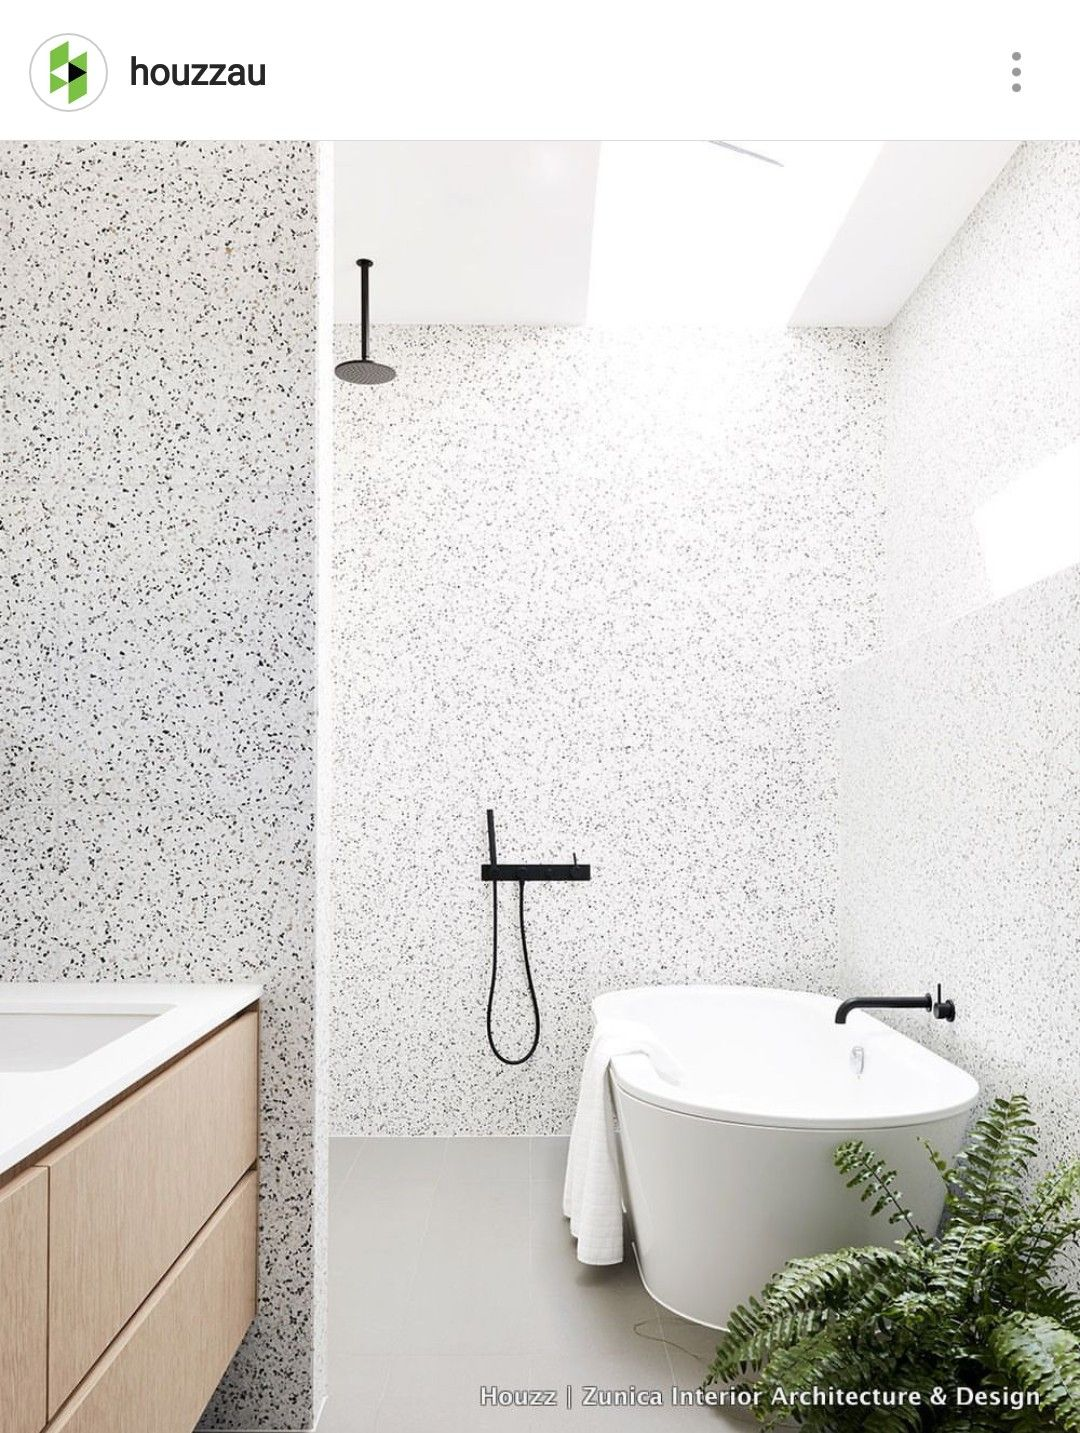 Pin by Ange Jennings on Bathroom Concepts | Pinterest